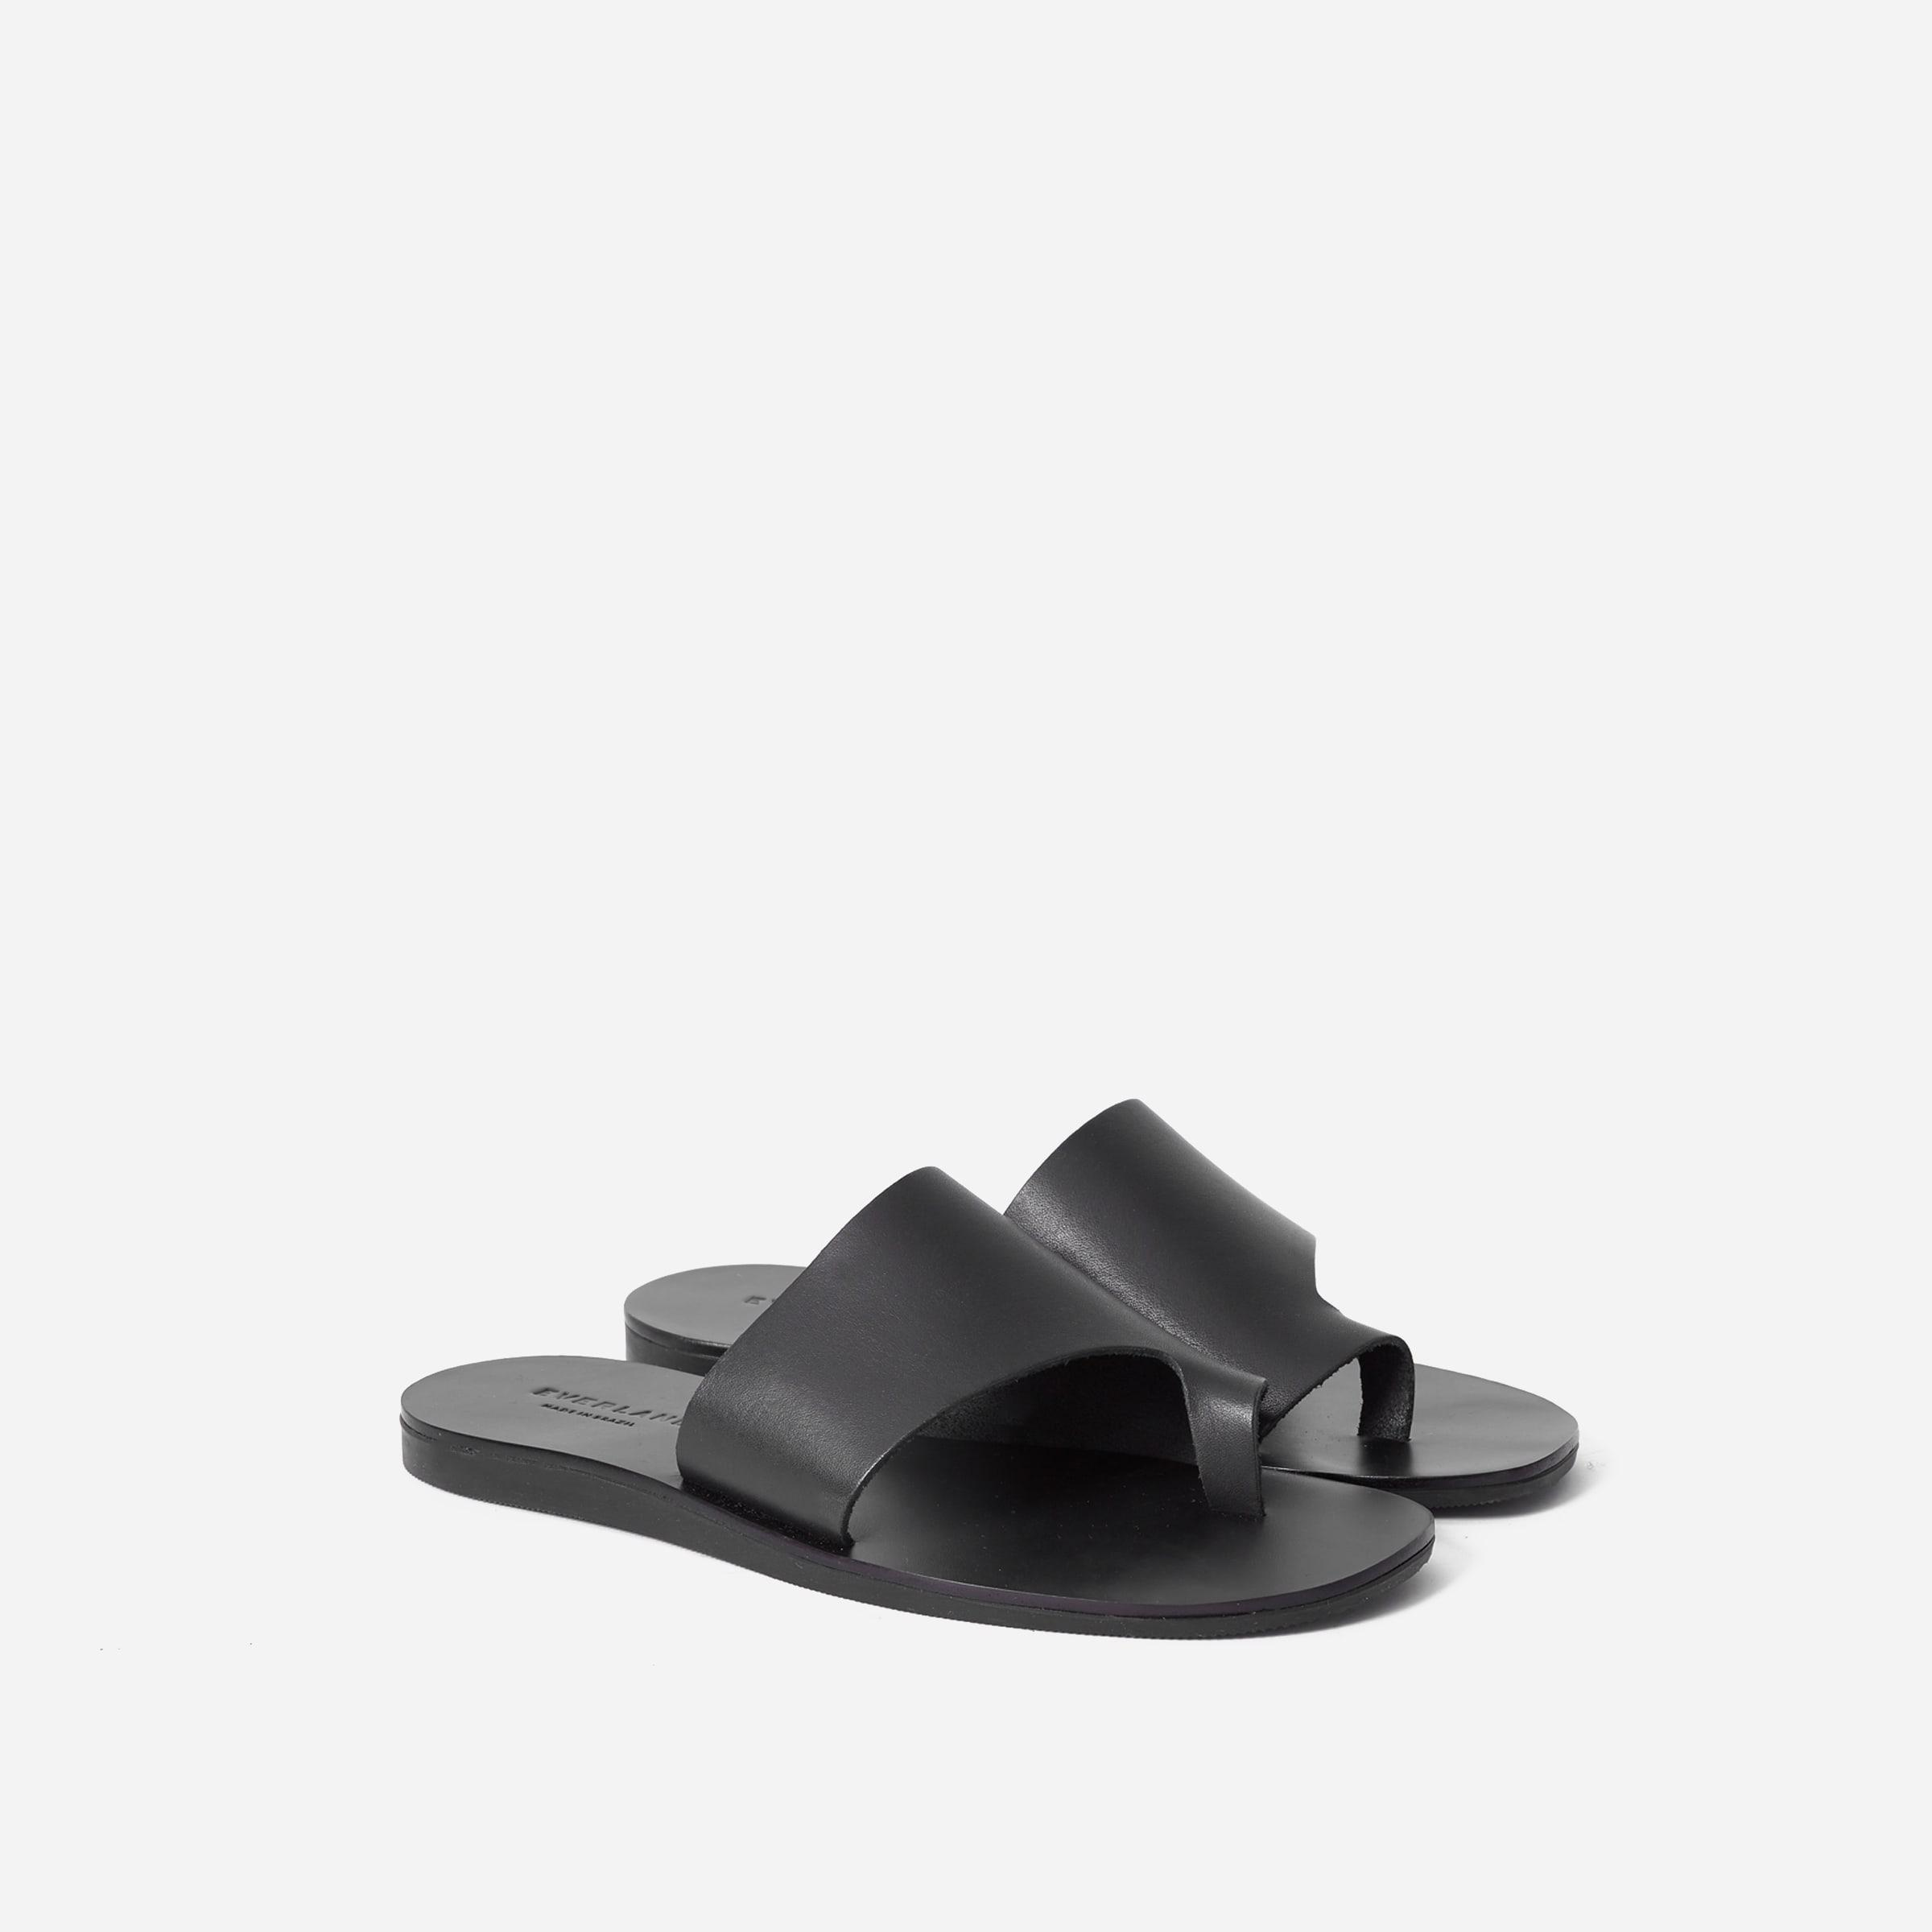 The Day Toe-Post Sandal 1